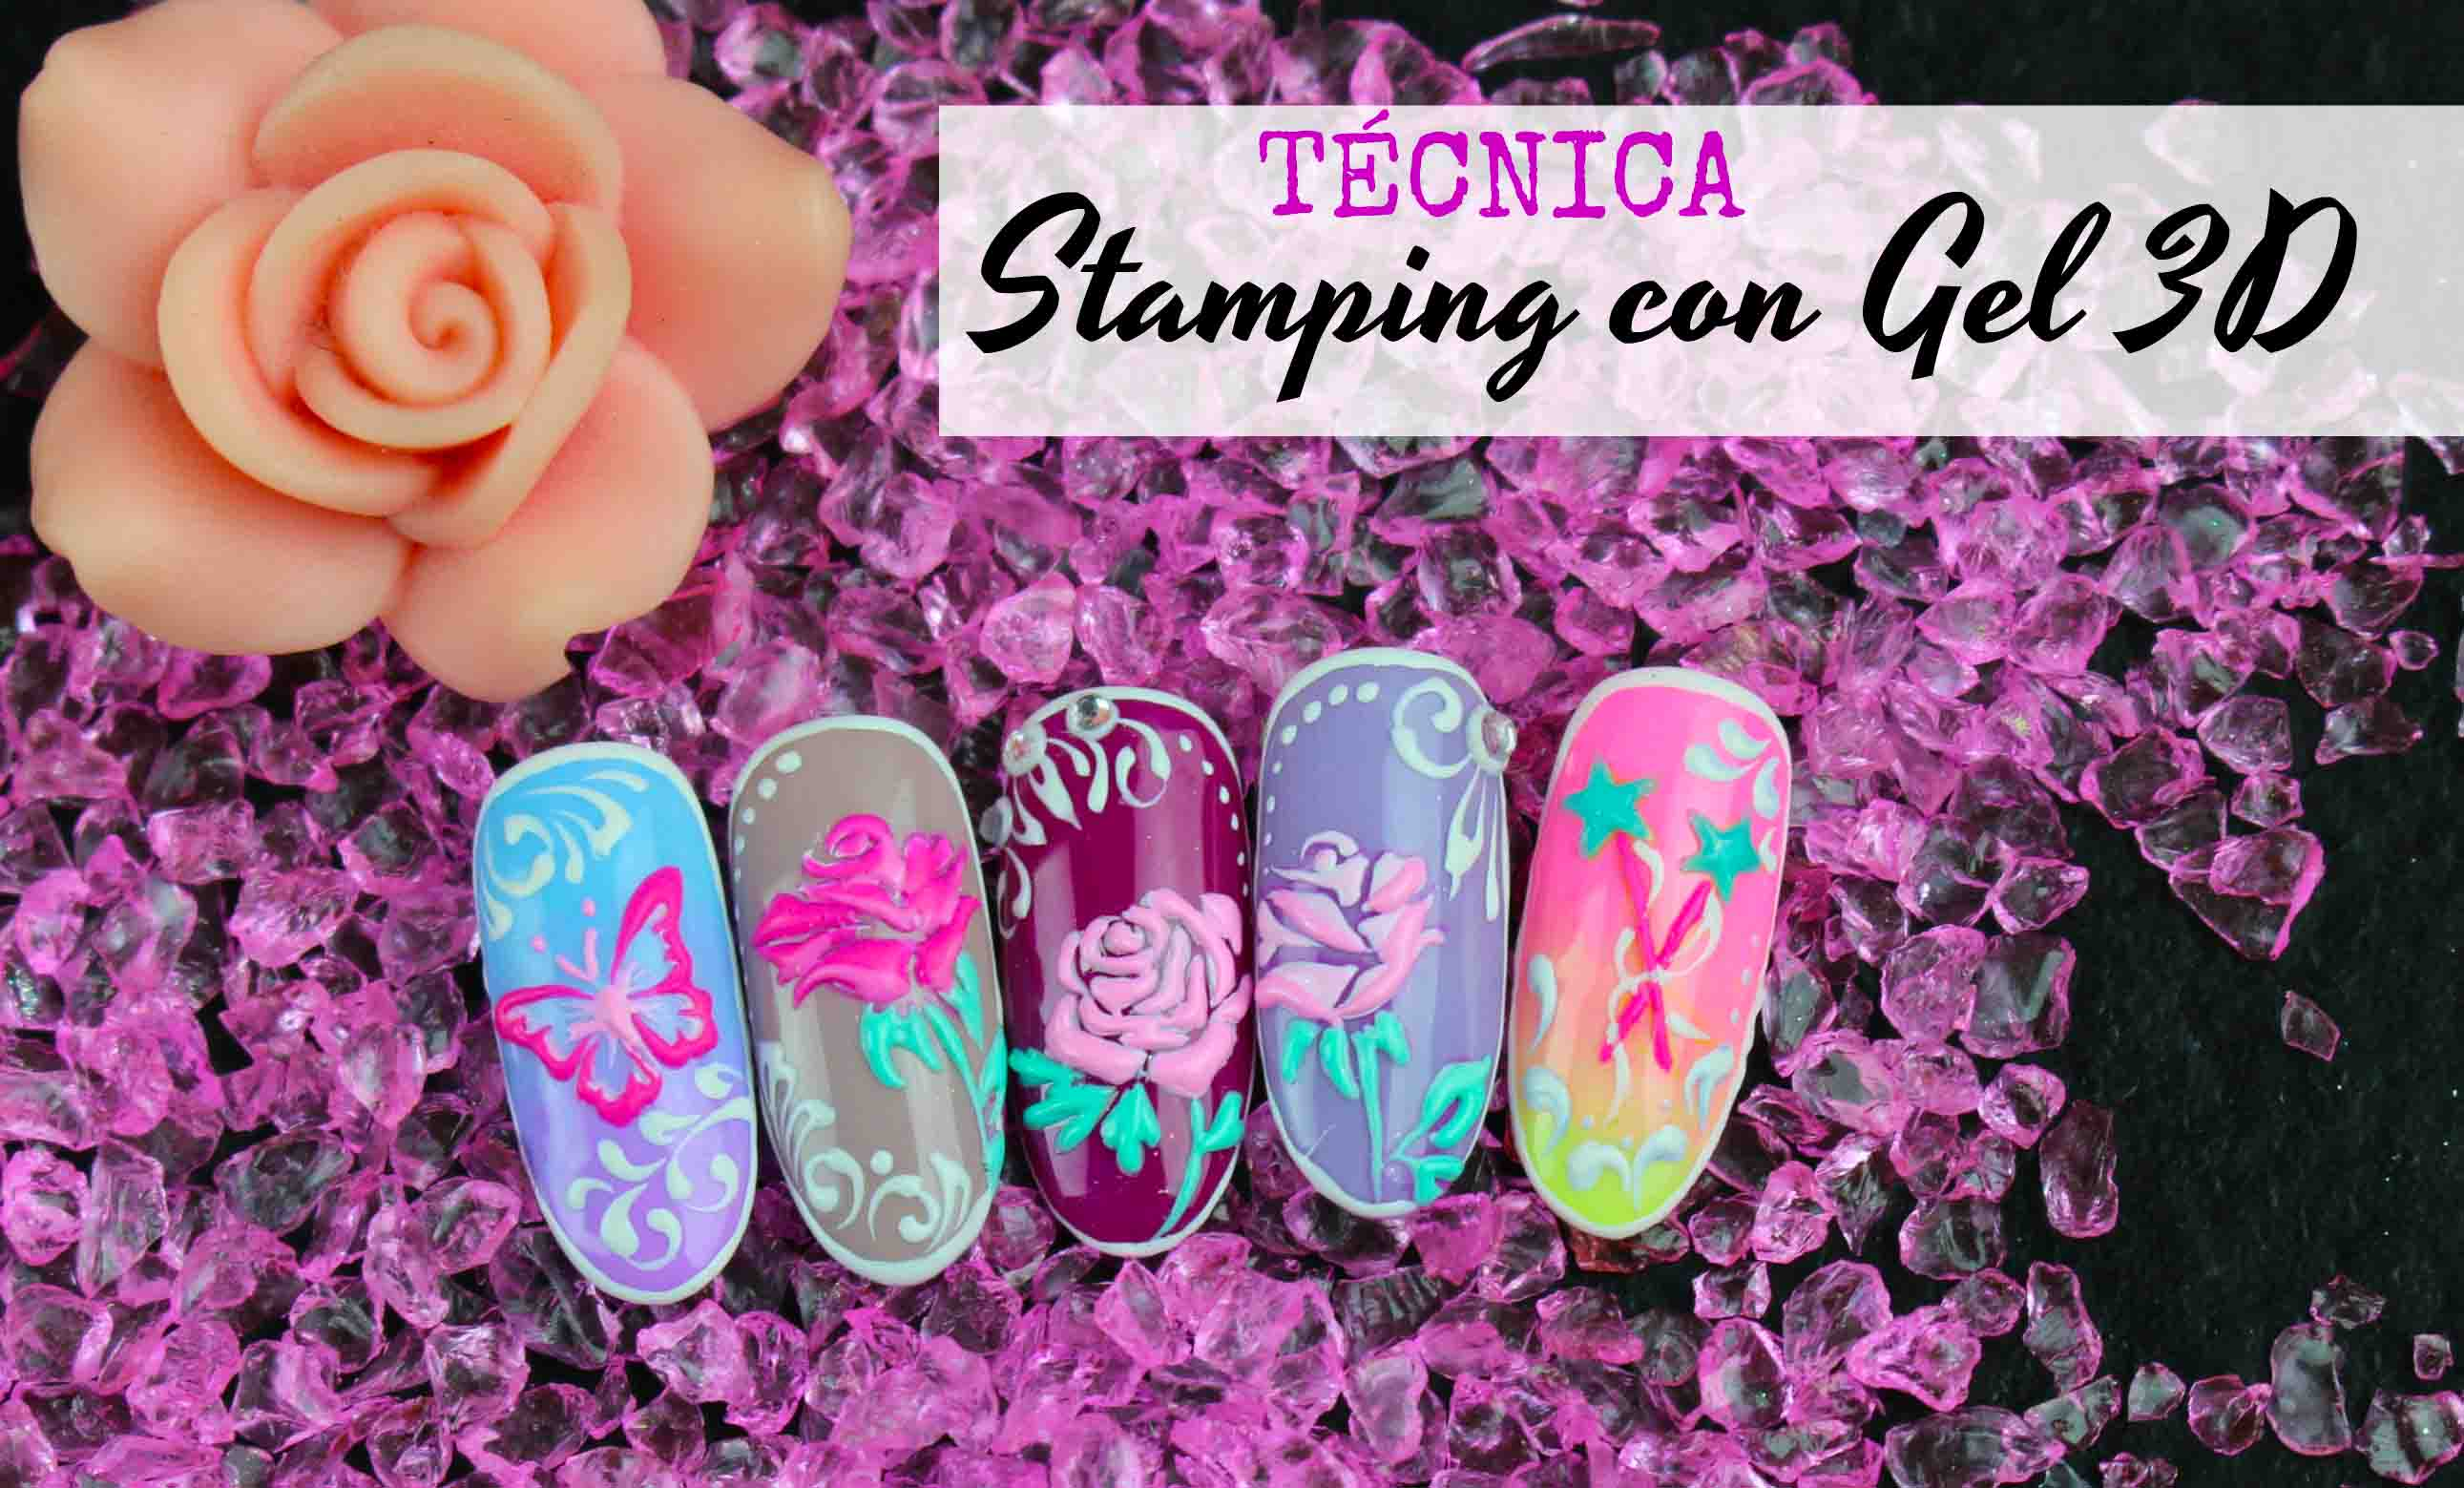 Técnica Stamping con Gel 3D